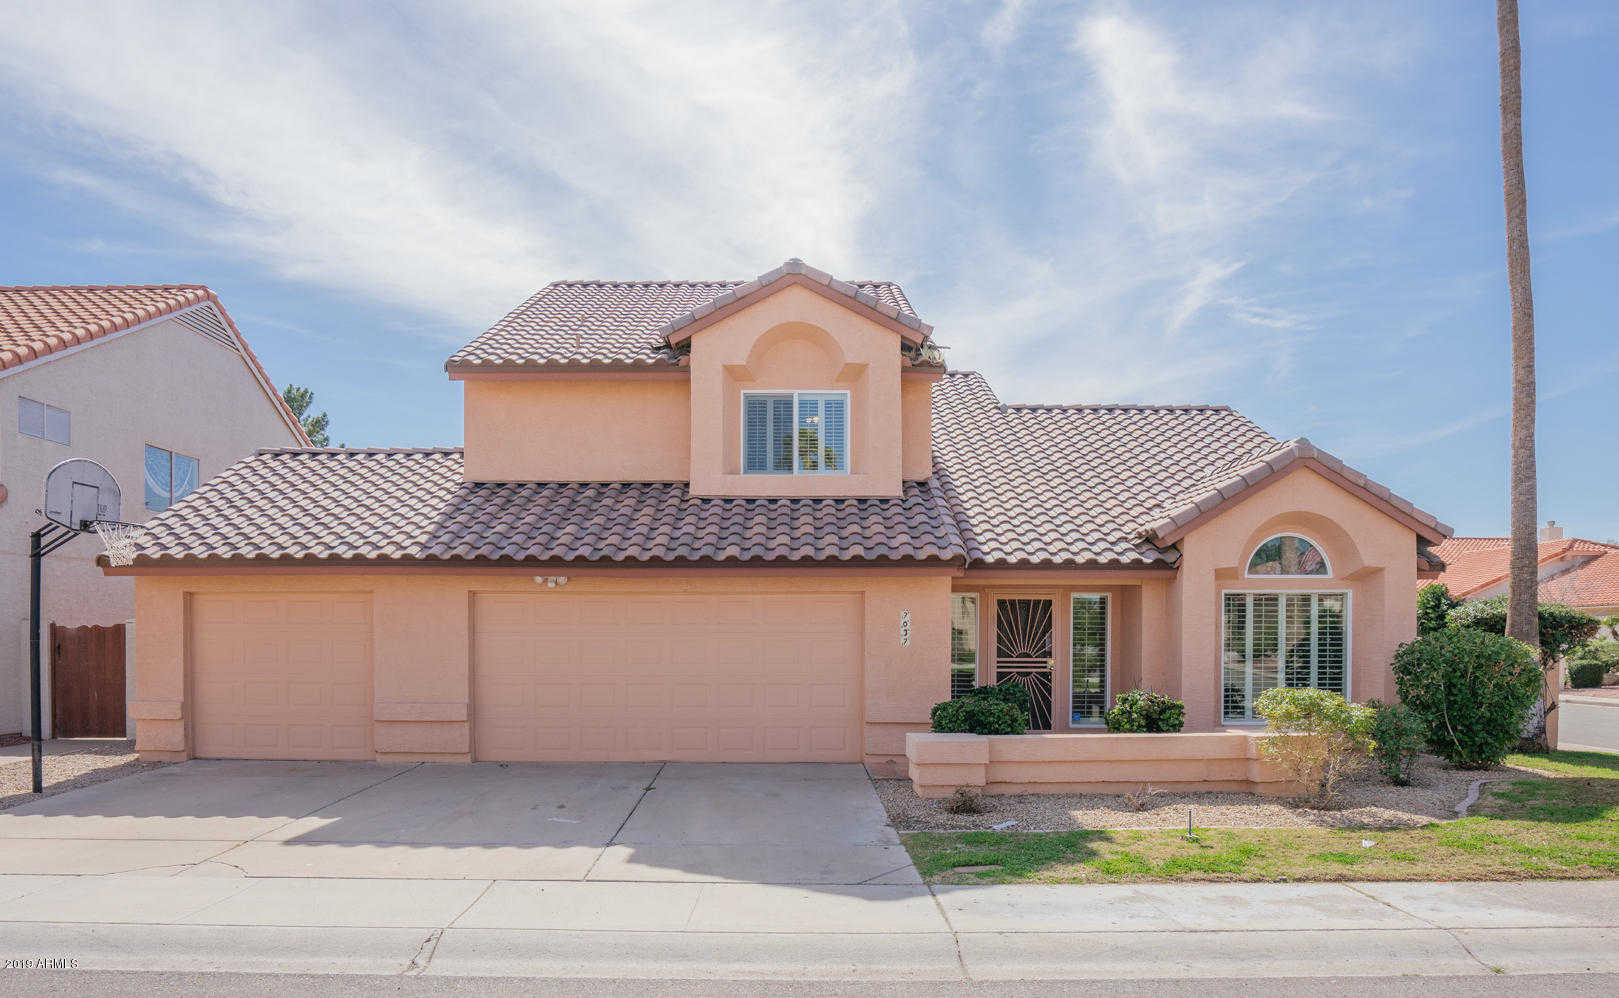 $348,000 - 3Br/3Ba - Home for Sale in Vistas At Arrowhead Ranch Lot 1-191 Tract A-c, Glendale